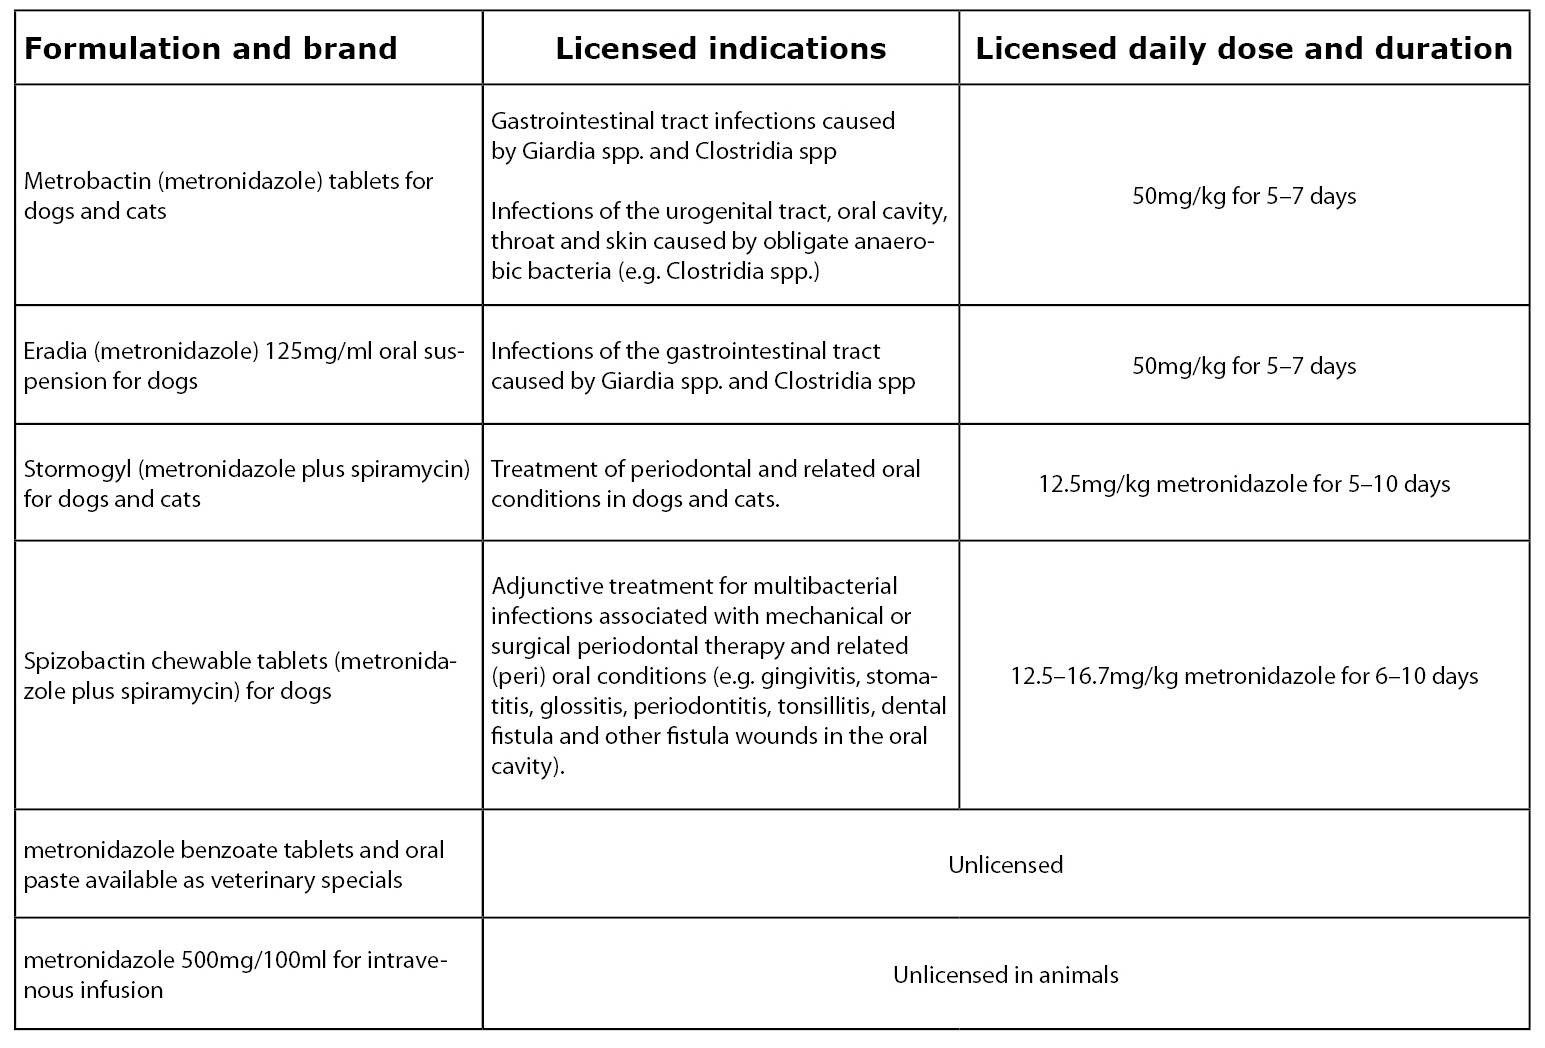 Table of metronidazole formulations